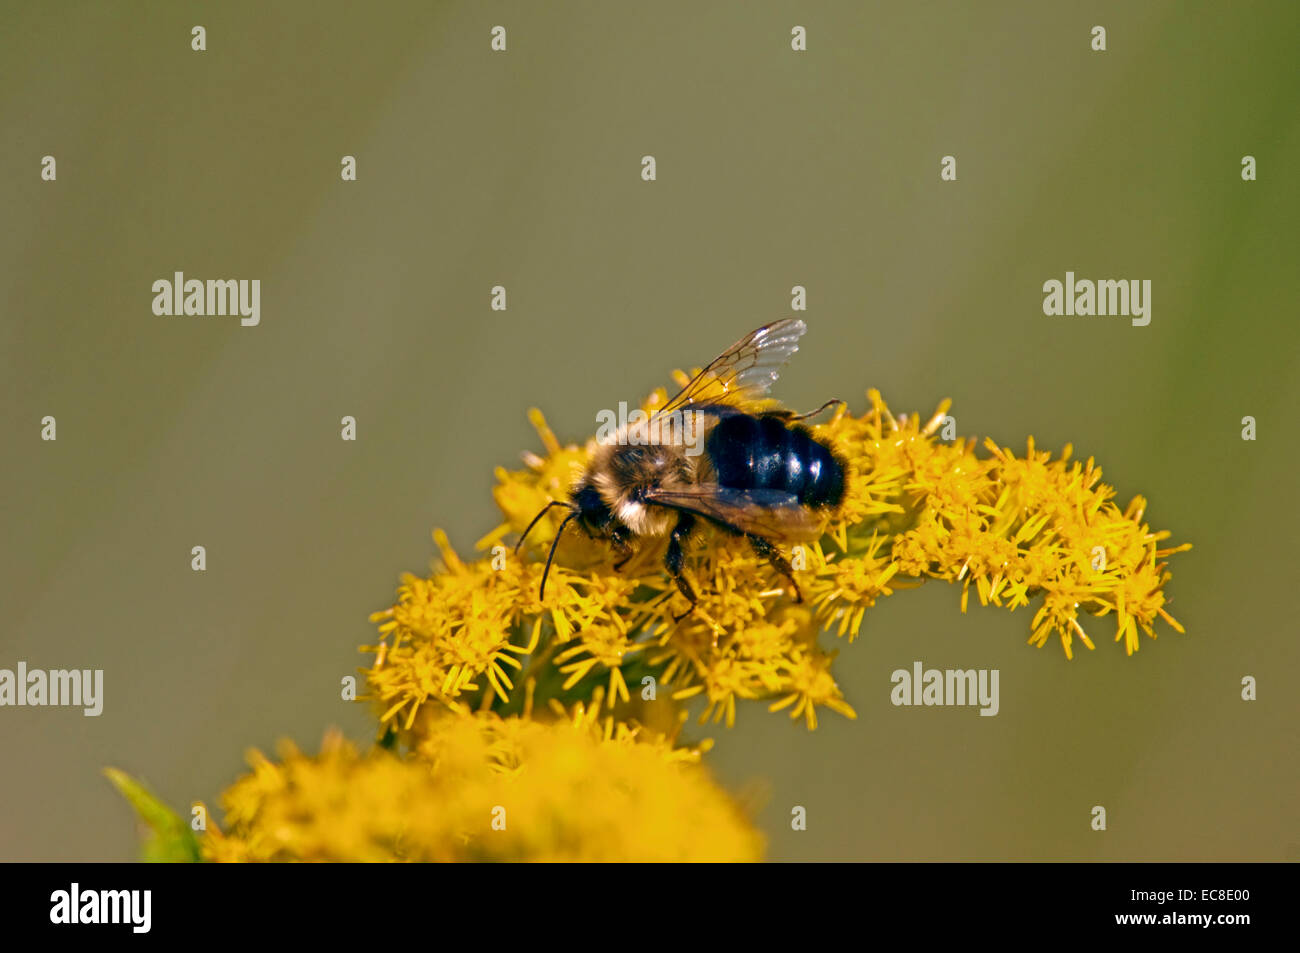 Bee gathering nectar on a Solidago, goldenrod blossom. - Stock Image